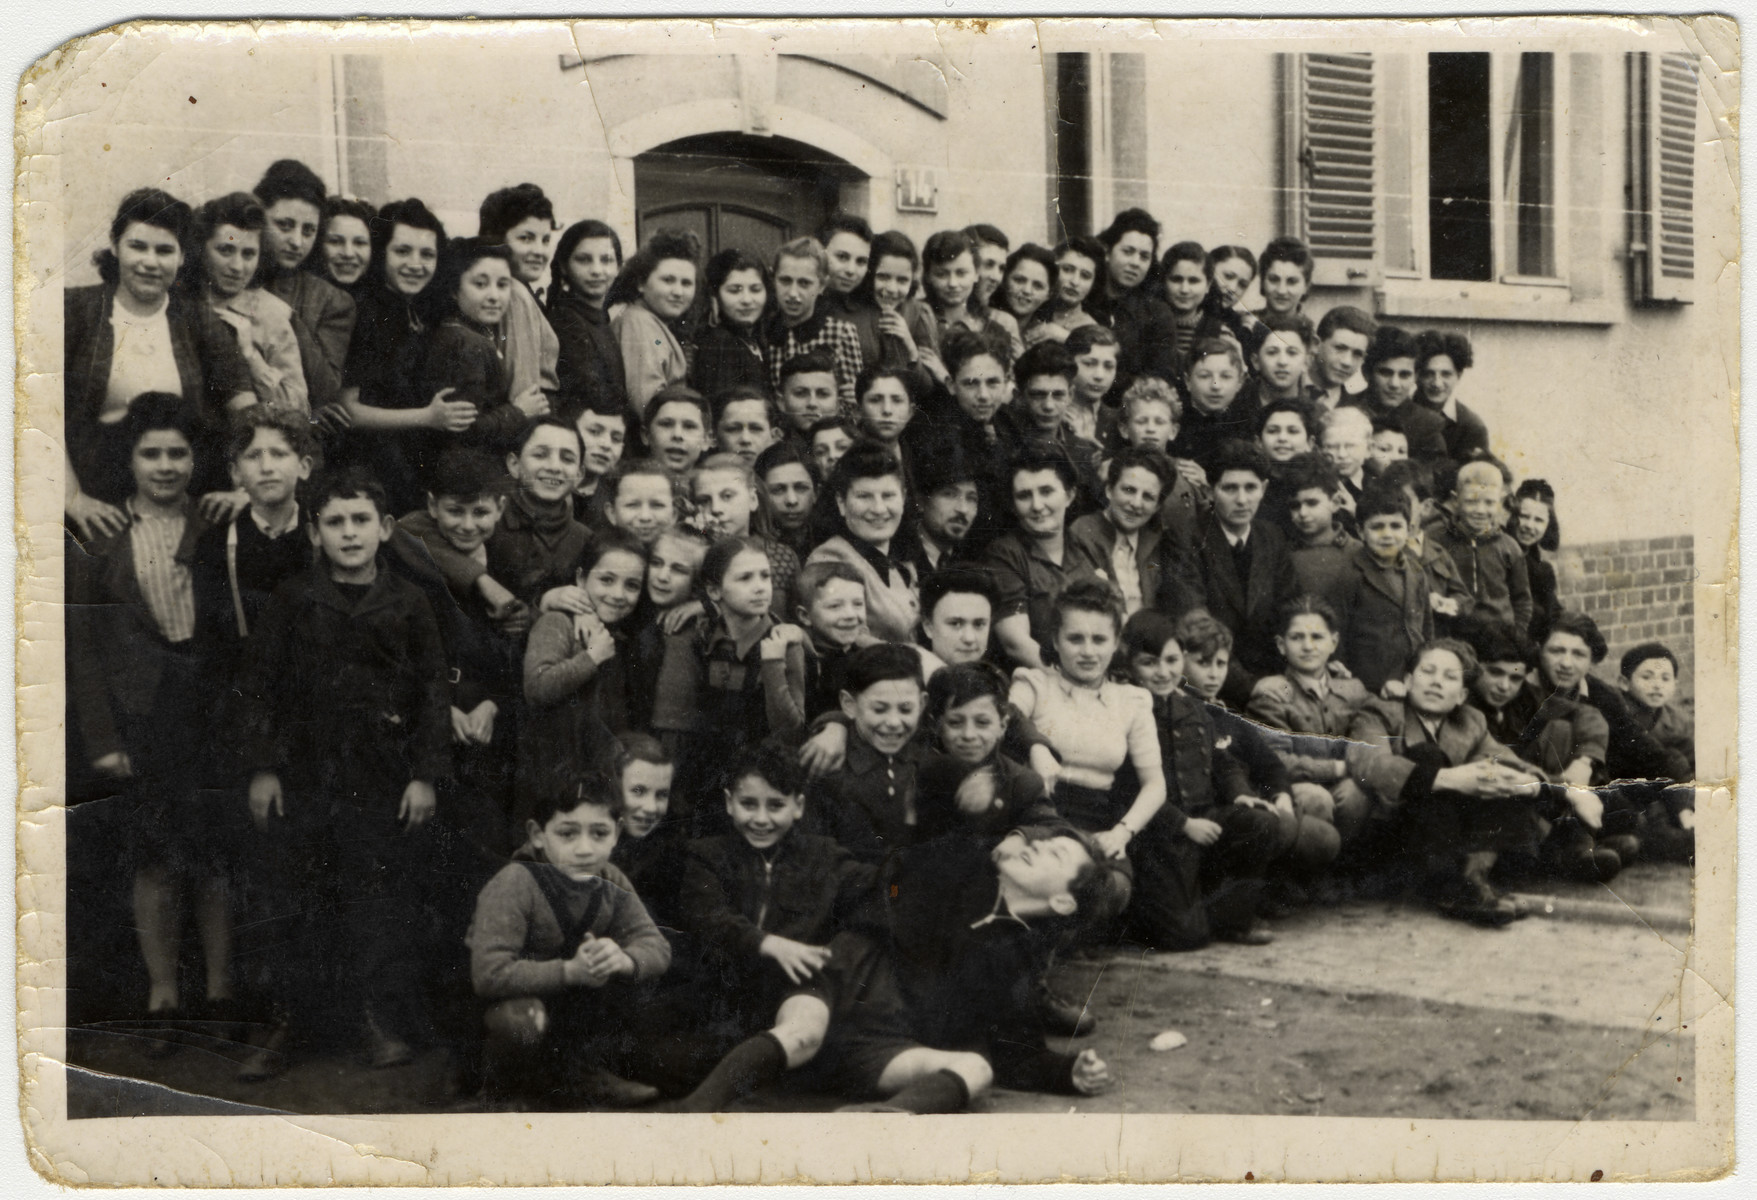 Students and teachers in the Jewish elementary school in Frankfurt; Hebrew was the primary language of instruction.